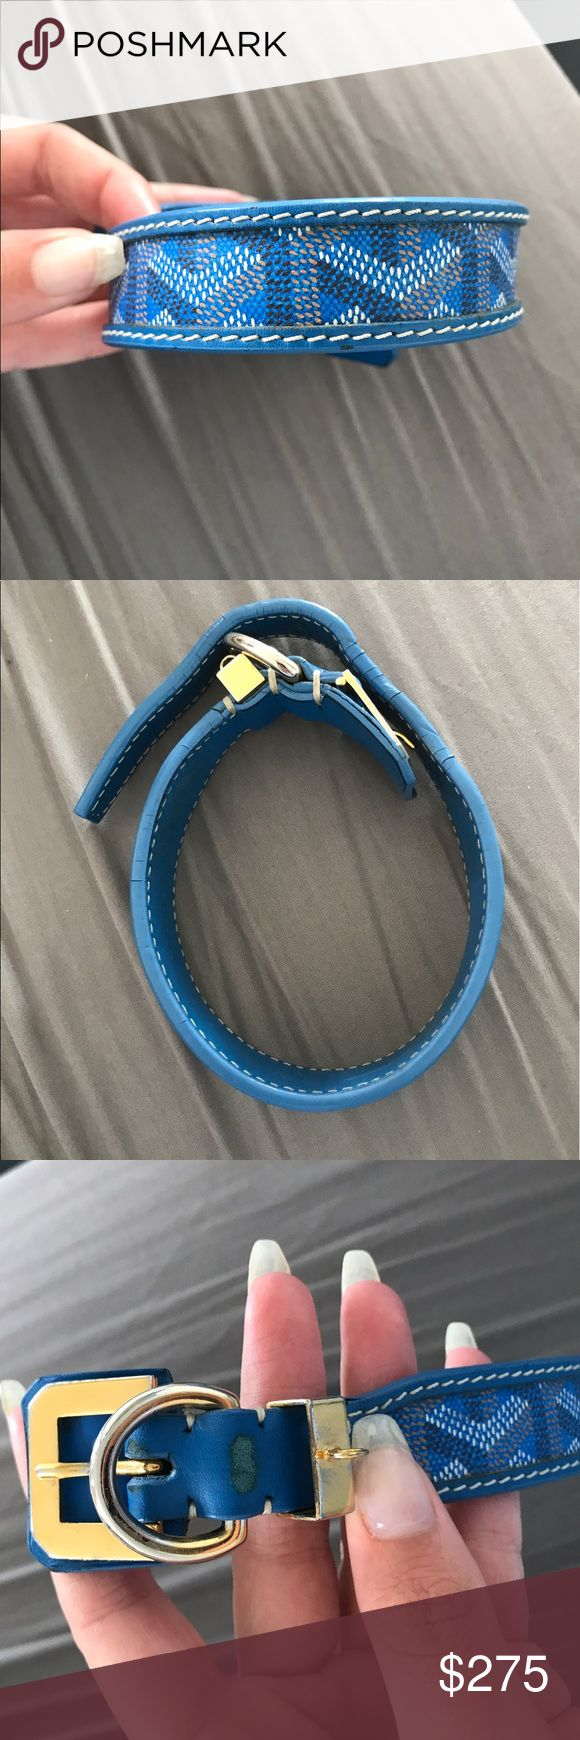 Goyard collar Auth Goyard dog collar. Very rare, signs of use but still in great condition. 16inches long. See all photos. This collar retails for 800+ at Barneys NYC Goyard Accessories